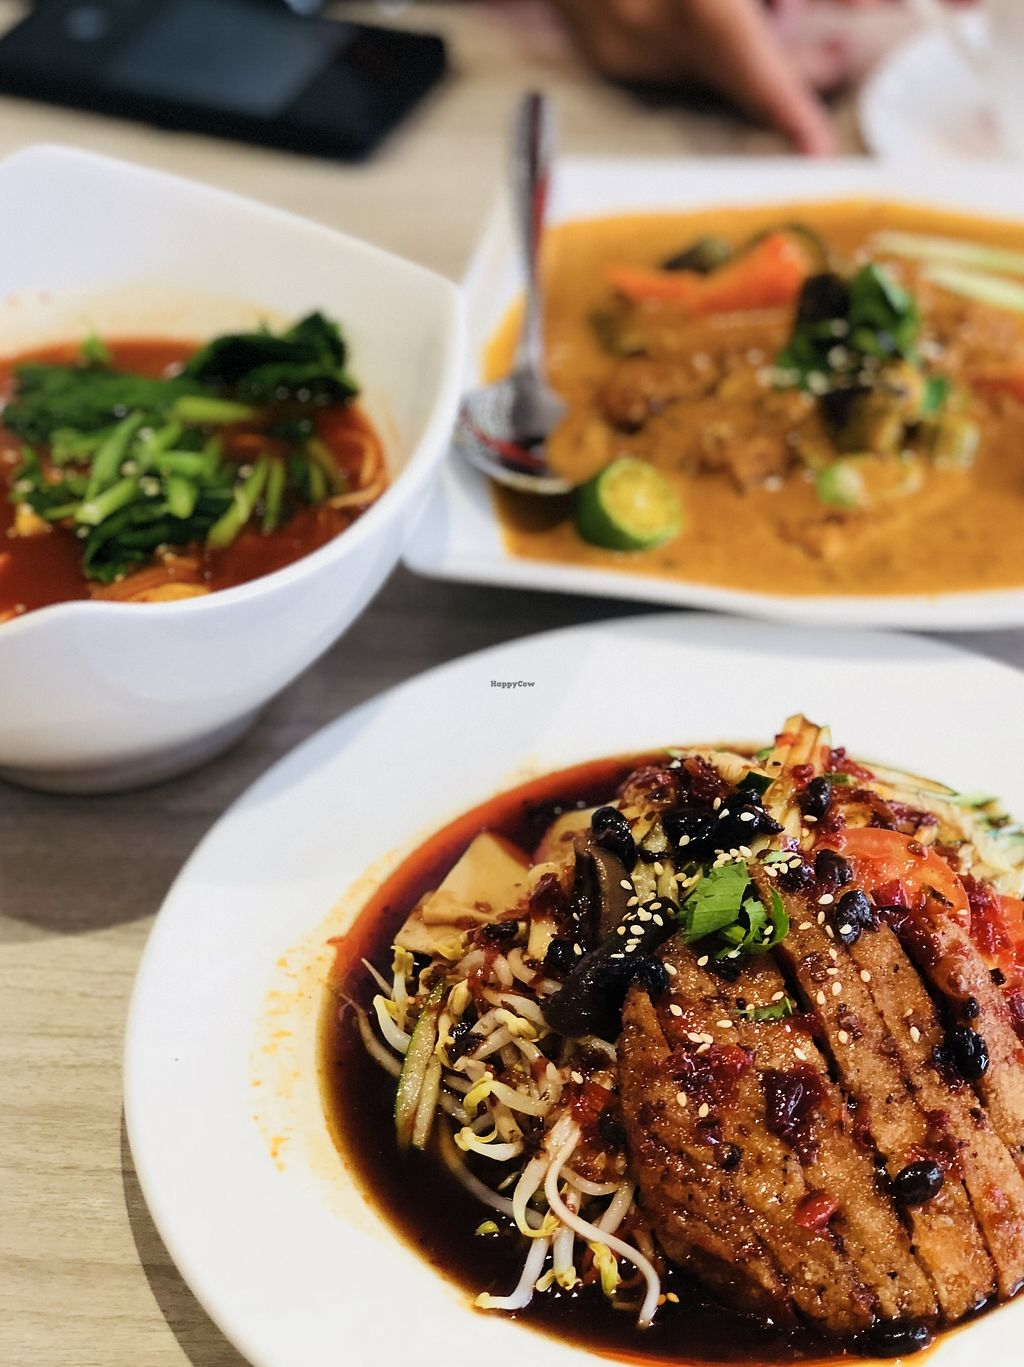 """Photo of O'bean Organic Soya Vegetarian Restaurant  by <a href=""""/members/profile/CherylQuincy"""">CherylQuincy</a> <br/>Pan fried chicken cold ramen, kimchi soup ramen, Indian Assam curry tempeh <br/> February 25, 2018  - <a href='/contact/abuse/image/110791/363682'>Report</a>"""